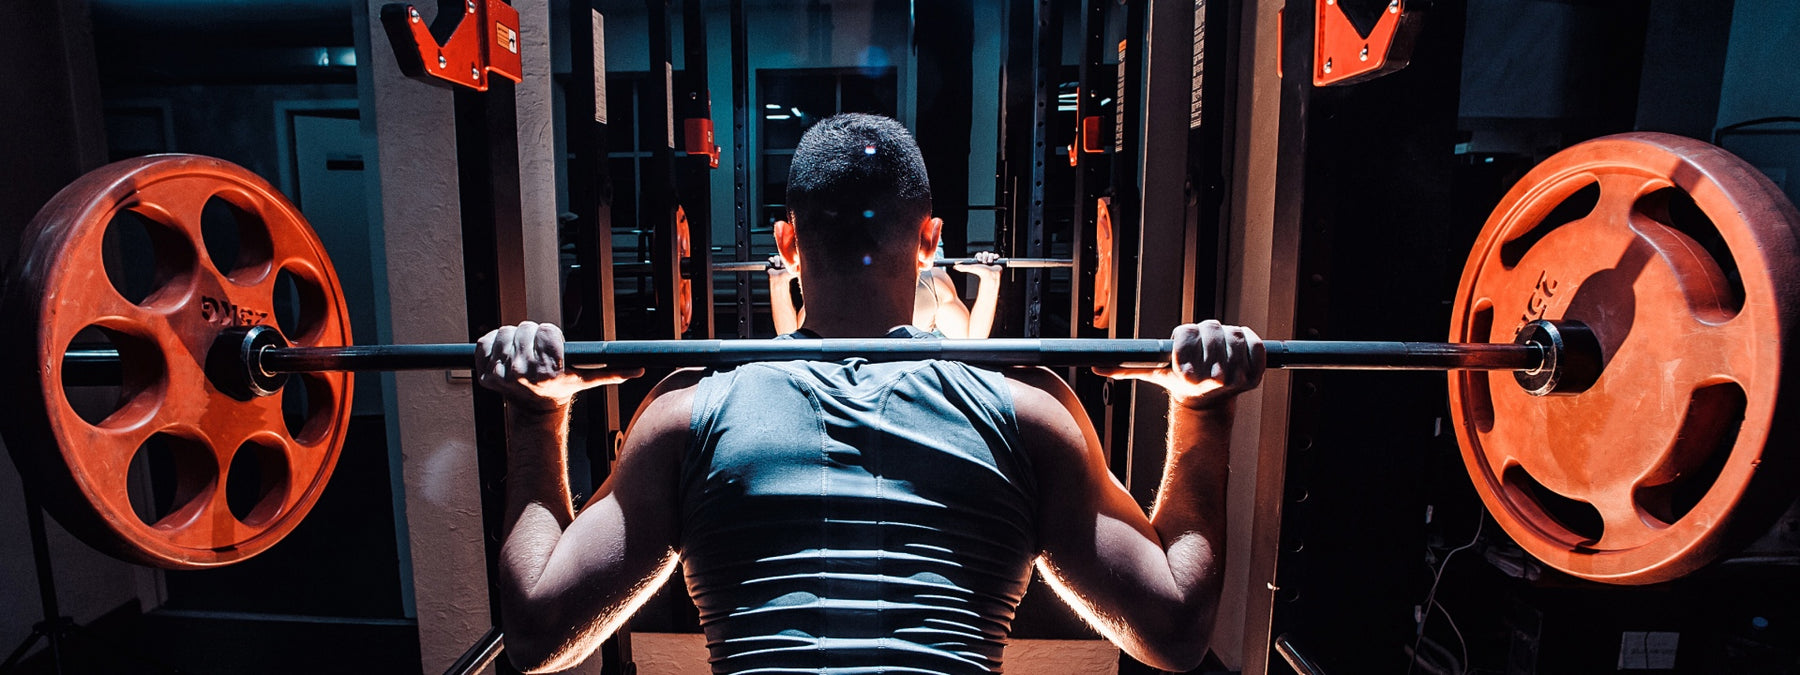 Gain Muscle With Mechanical Drop Sets